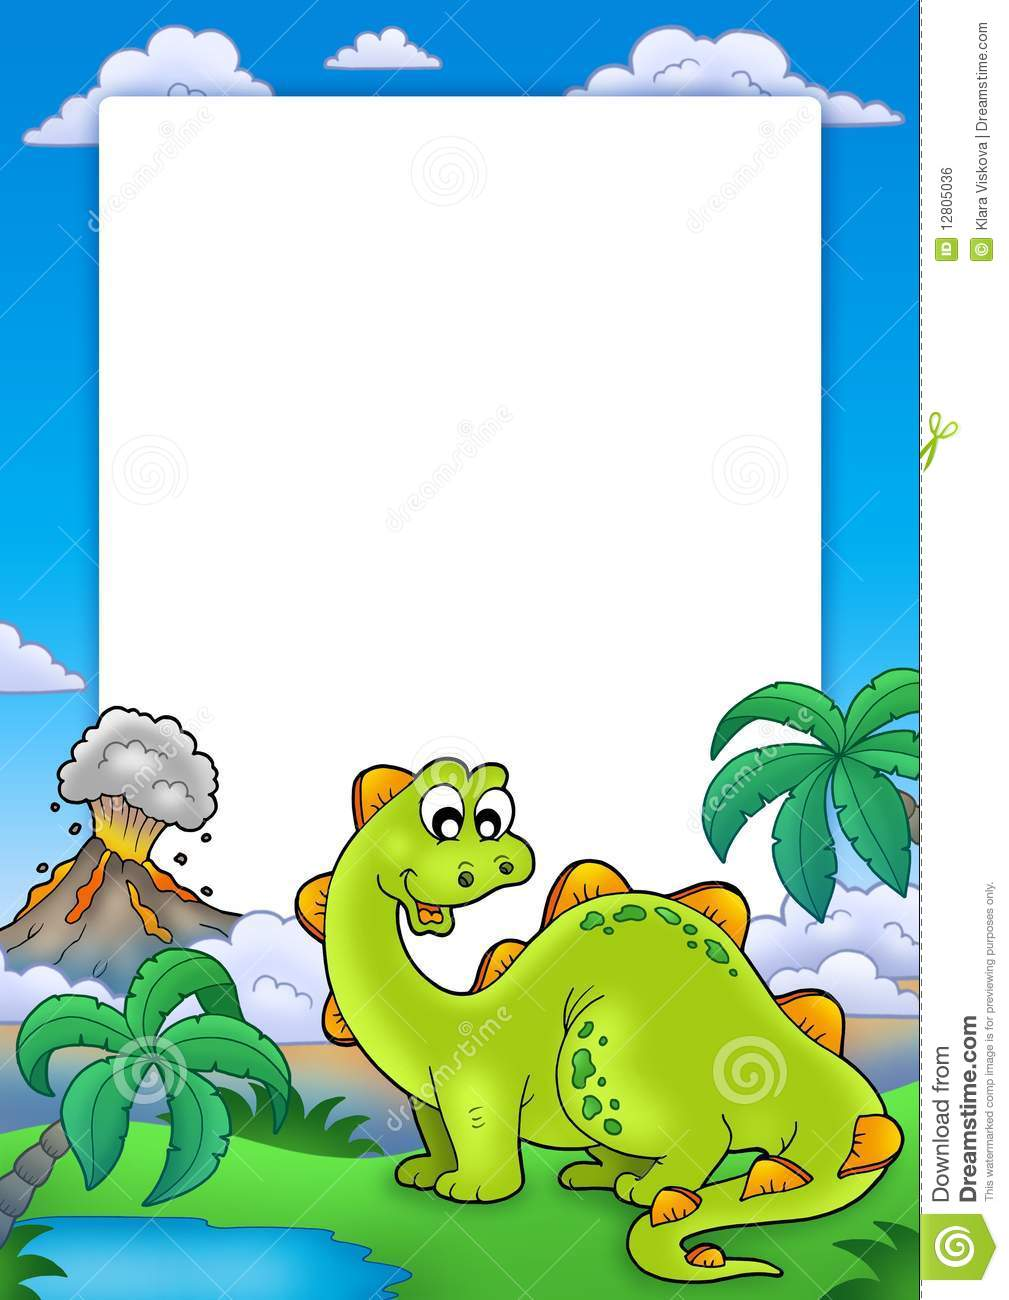 Frame With Cute Dinosaur Royalty Free Stock Image - Image: 12805036